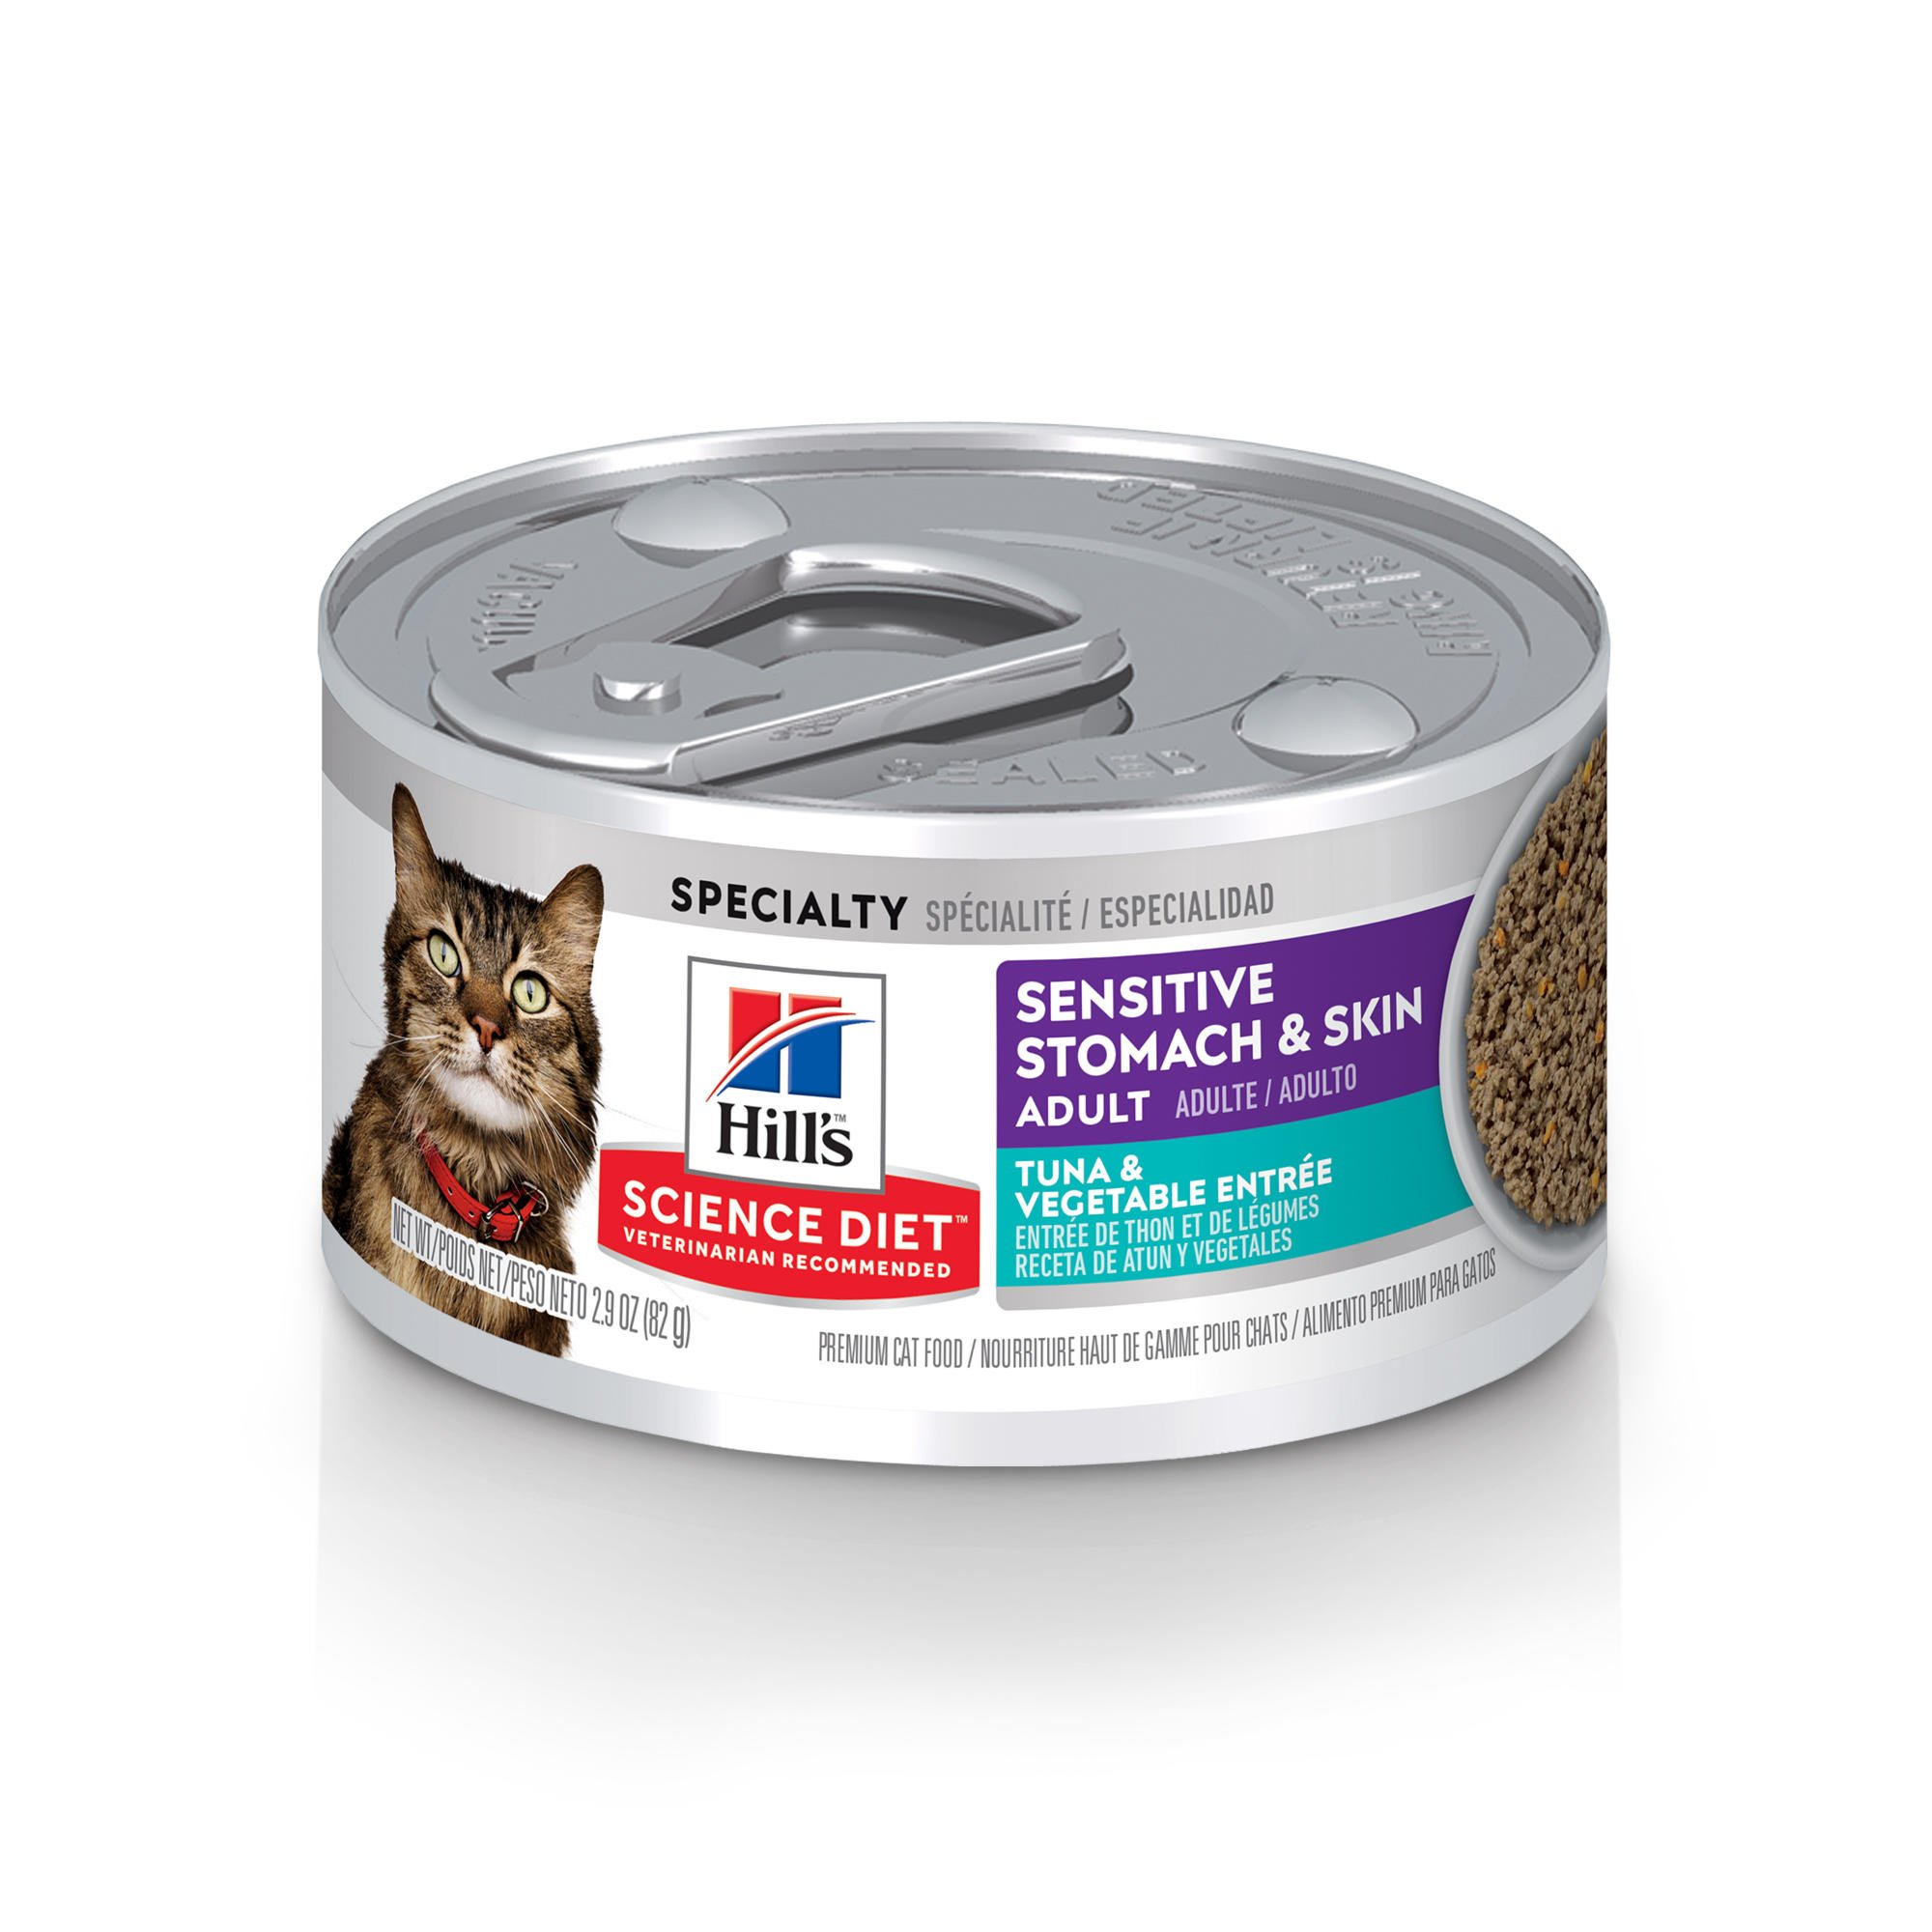 Sensitive Stomach And Skin Cat Food Can